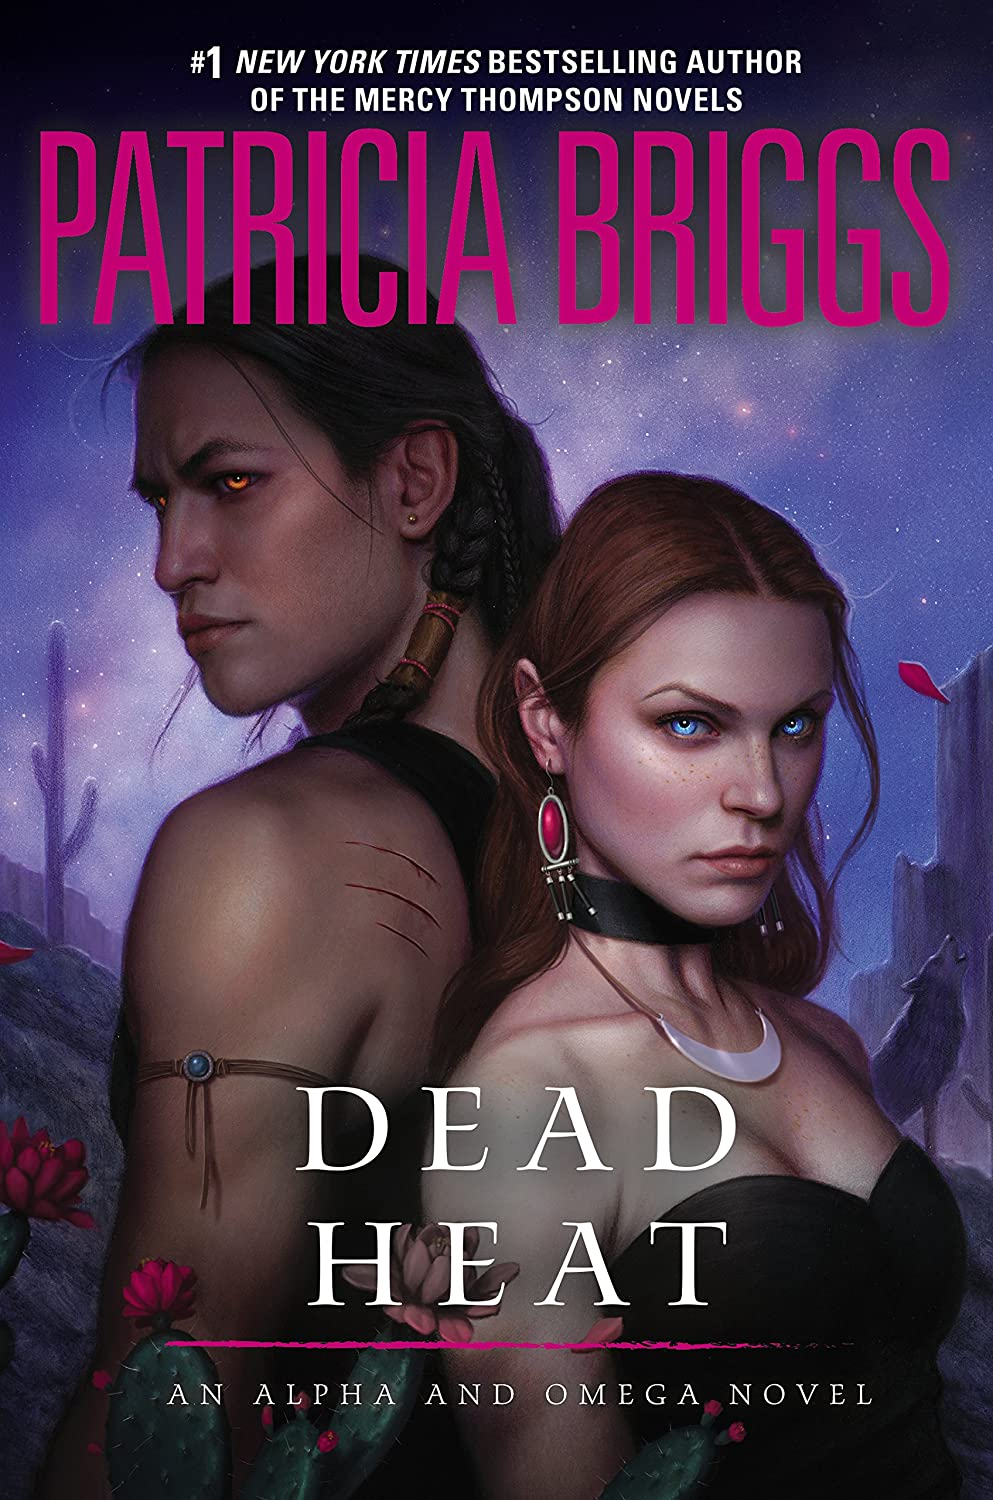 Dead Heat (Alpha and Omega #4) Patricia Briggs